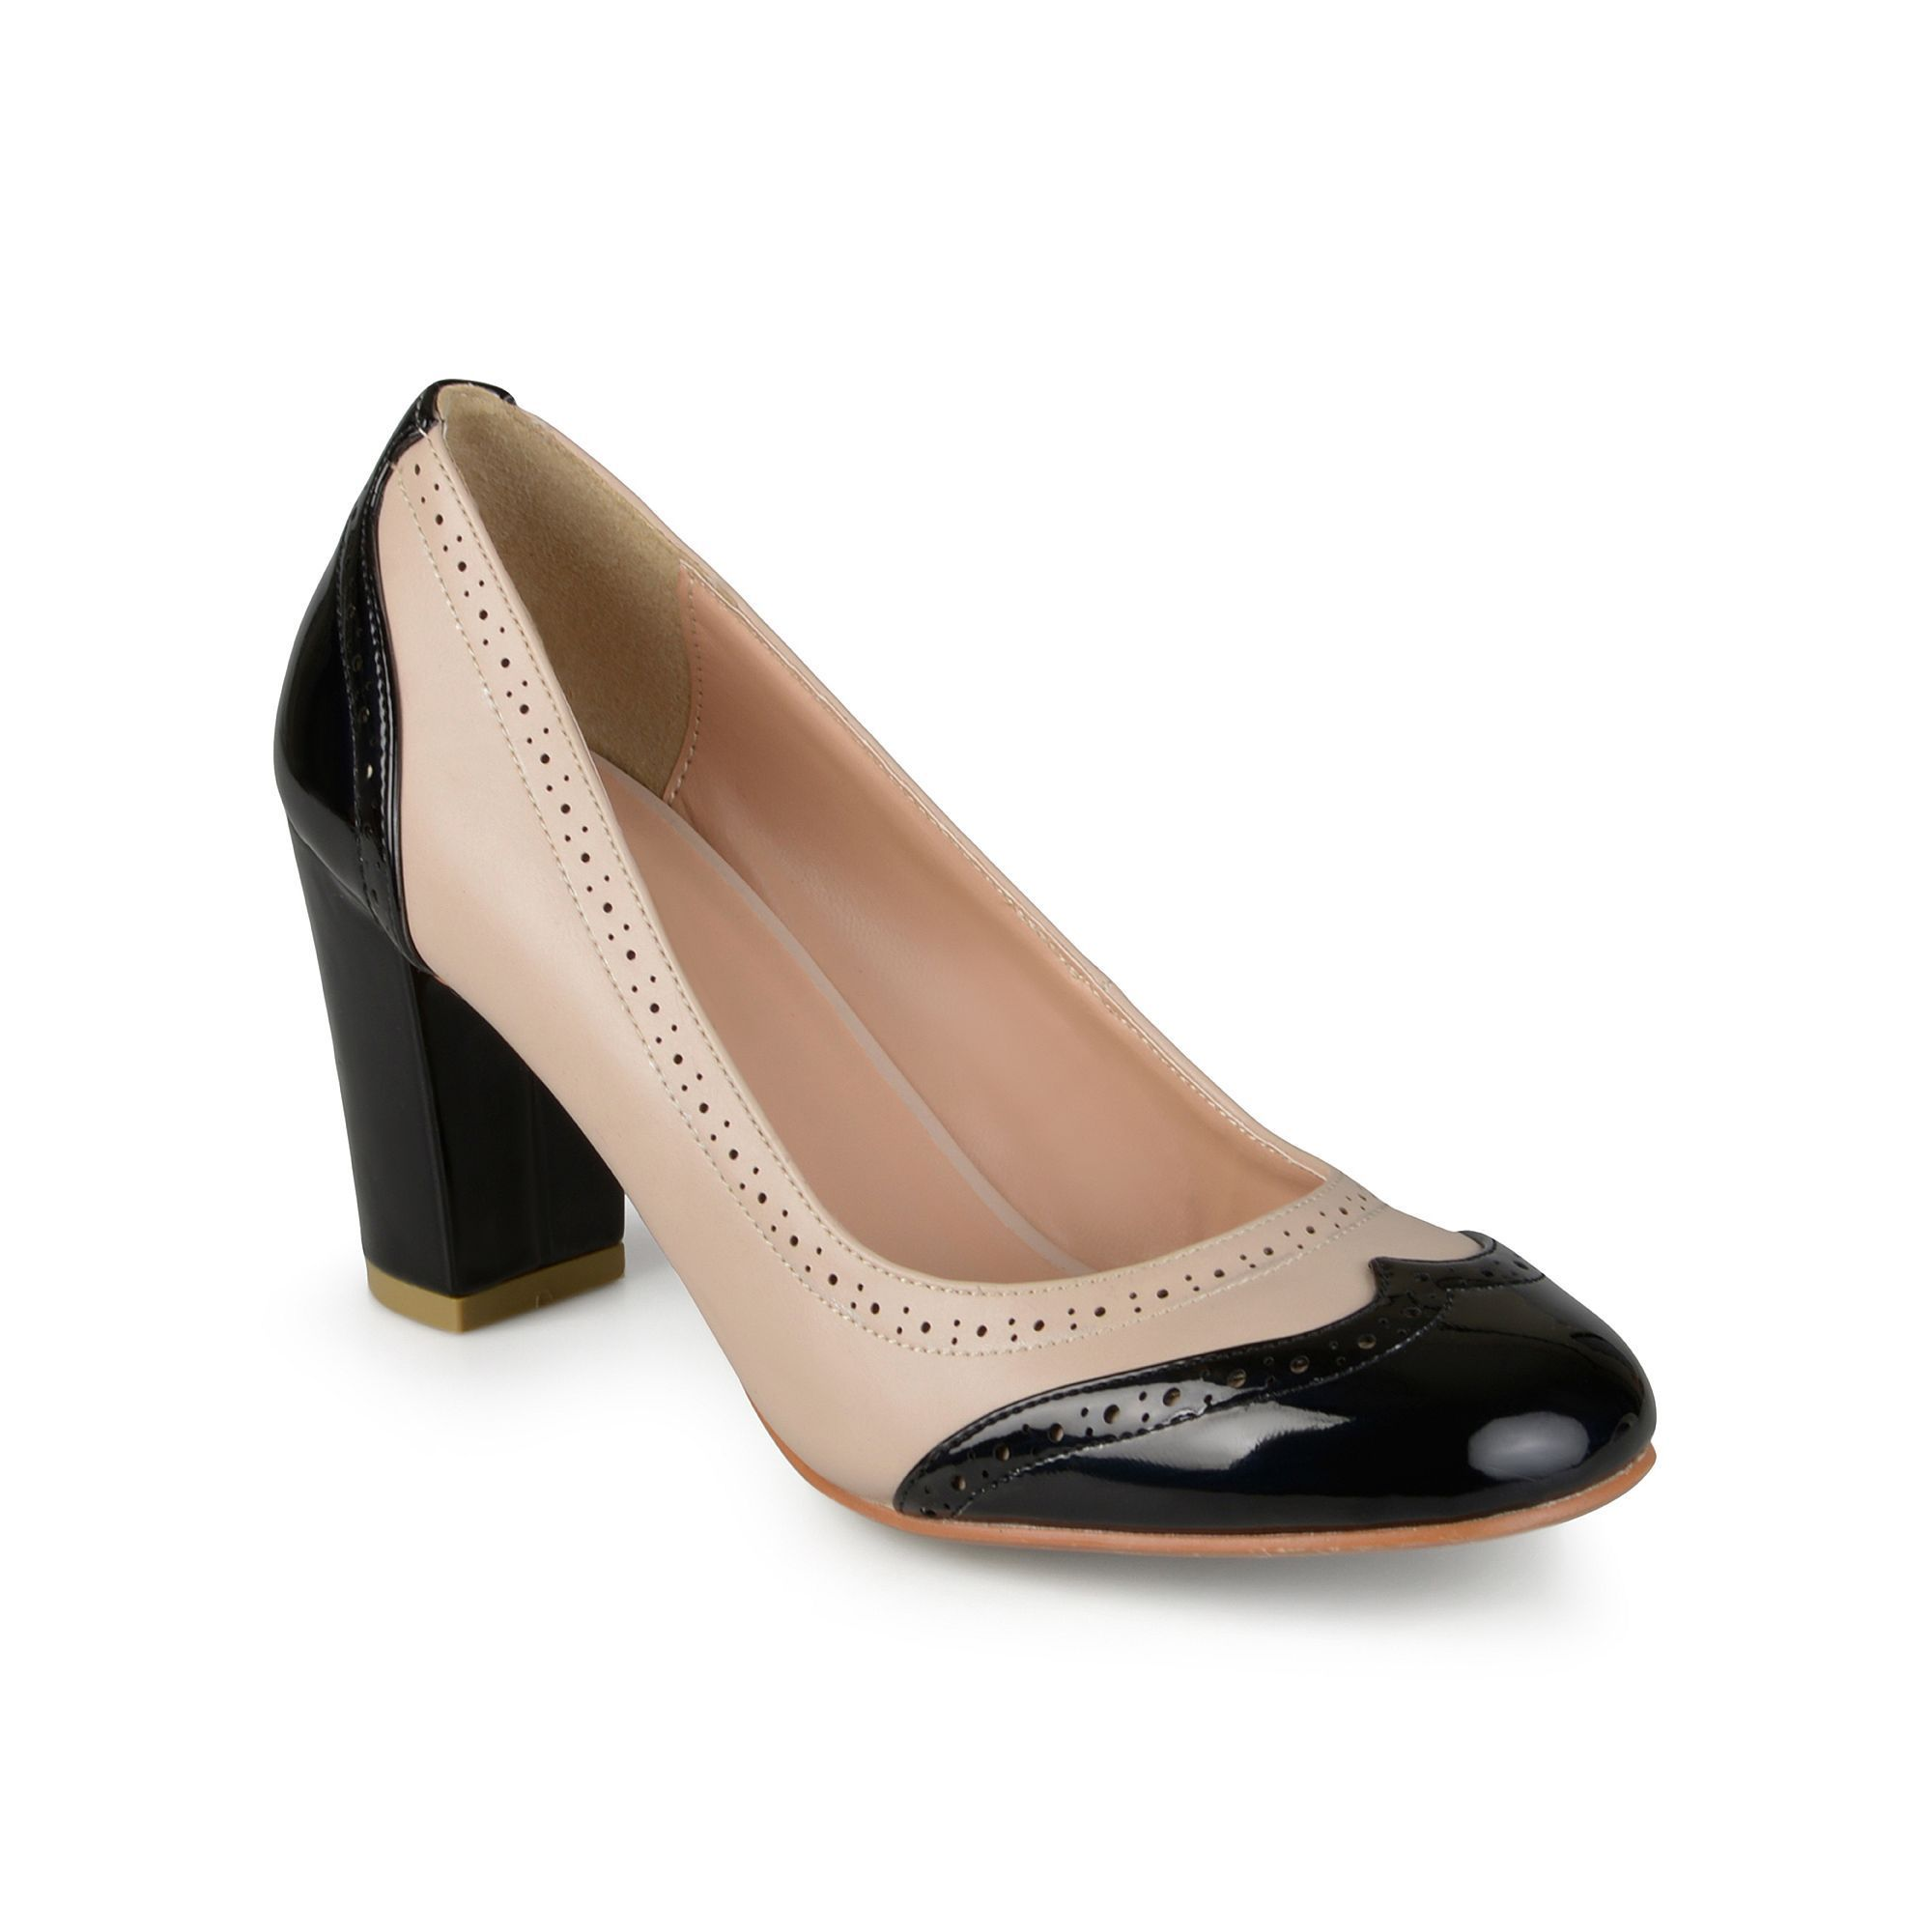 Journee Collection Sami ... Women's High Heels buy online with paypal cheap sale under $60 EQn02nh